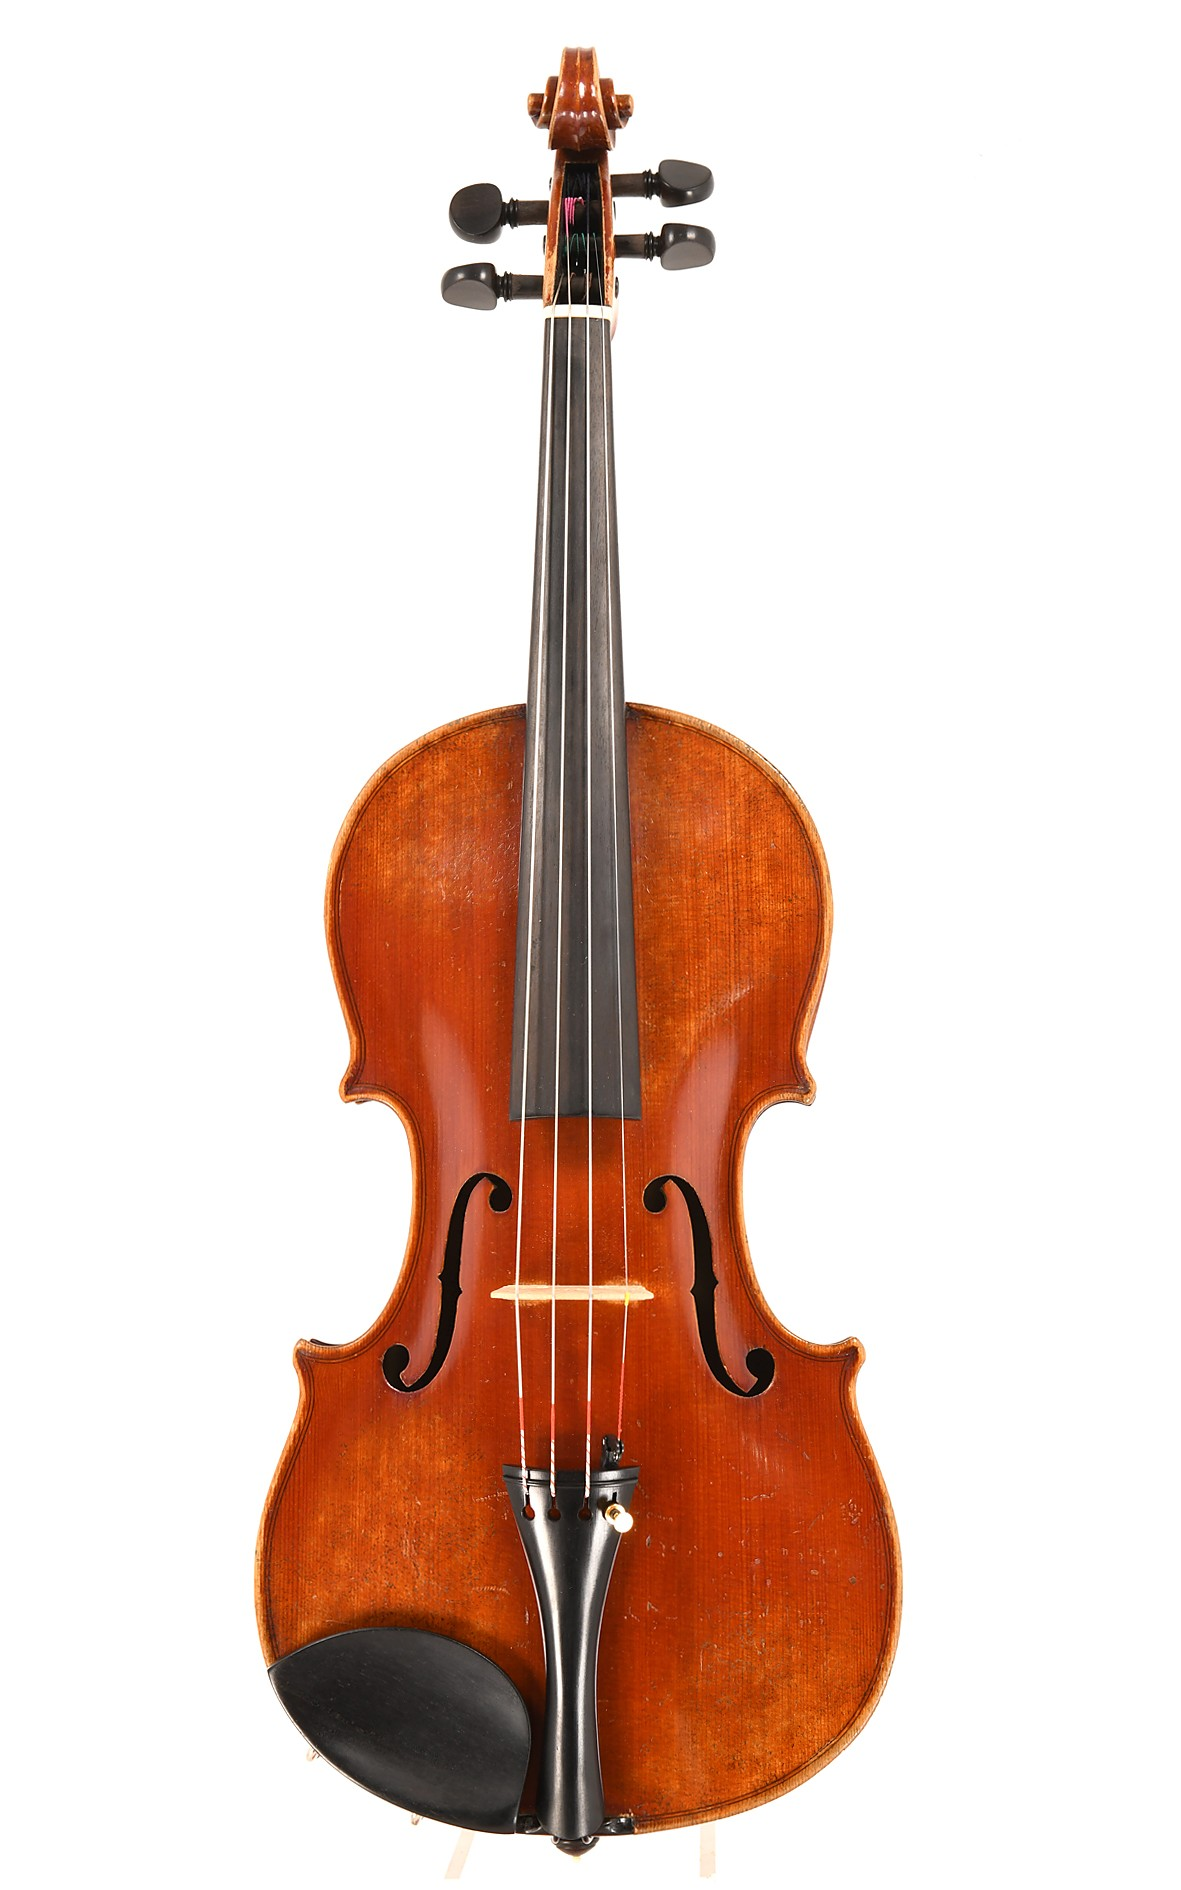 Antique German violin from Saxony after Jacobus Stainer, circa 1920